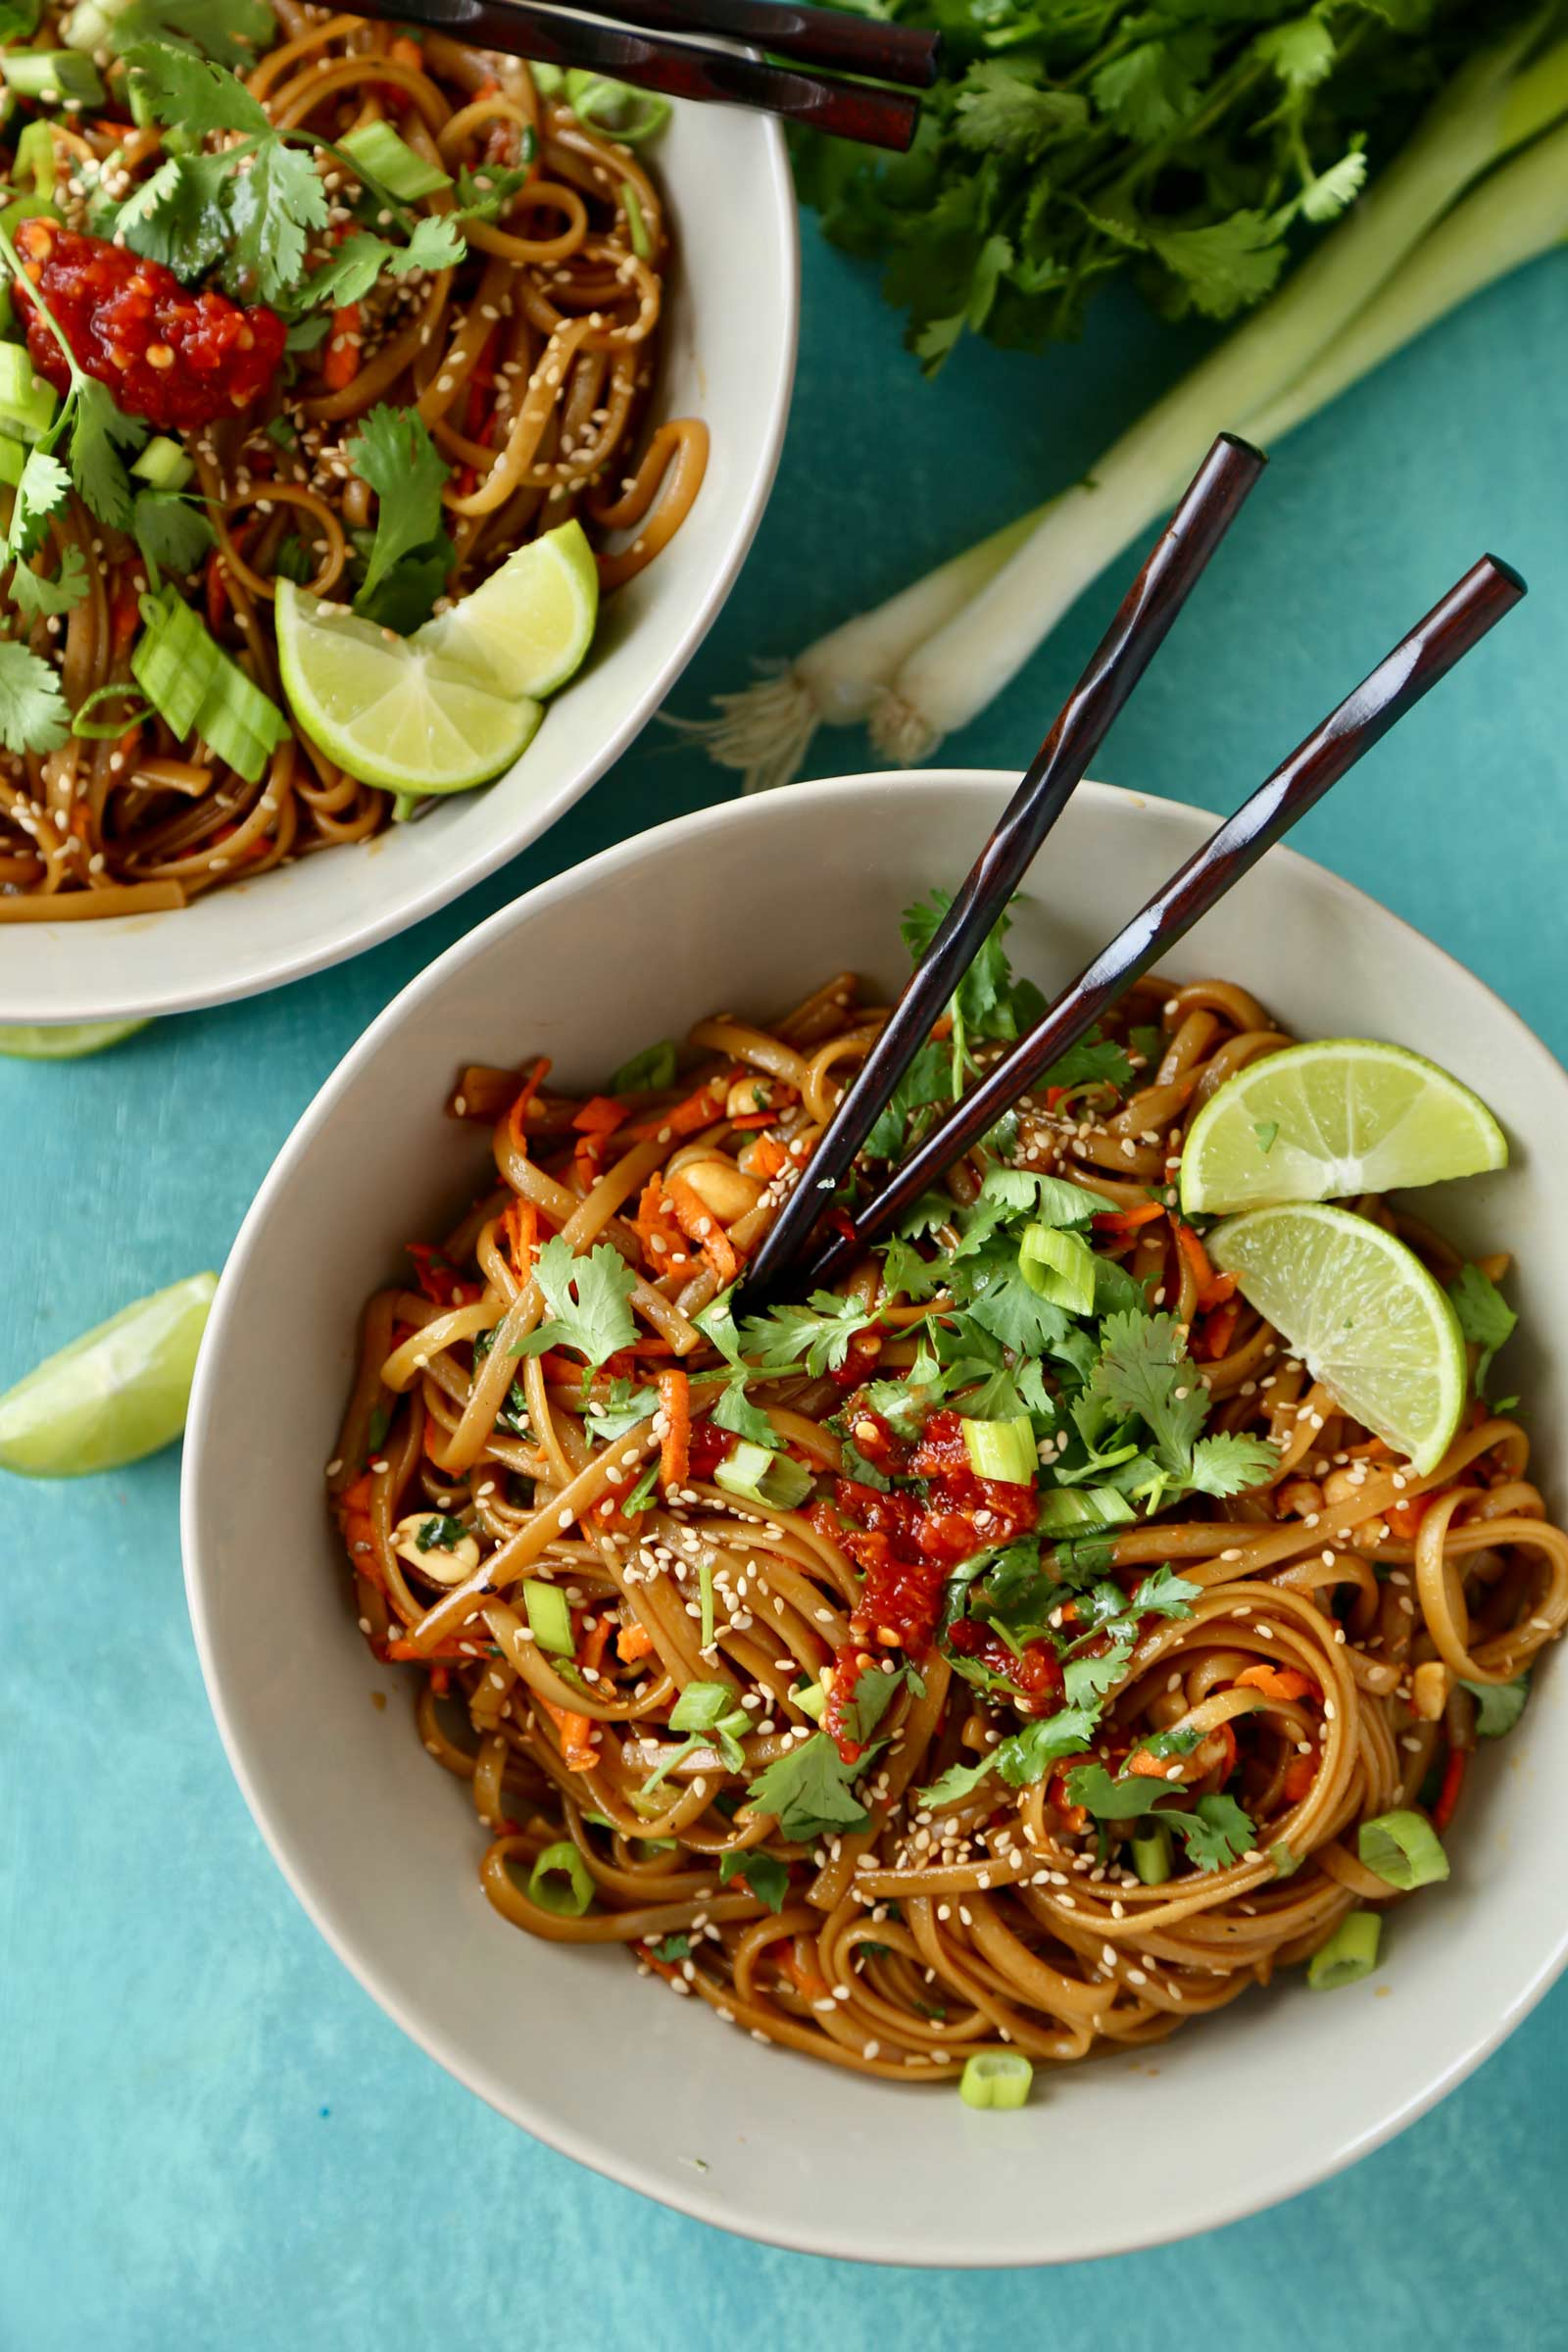 Spicy Thai noodles in bowl